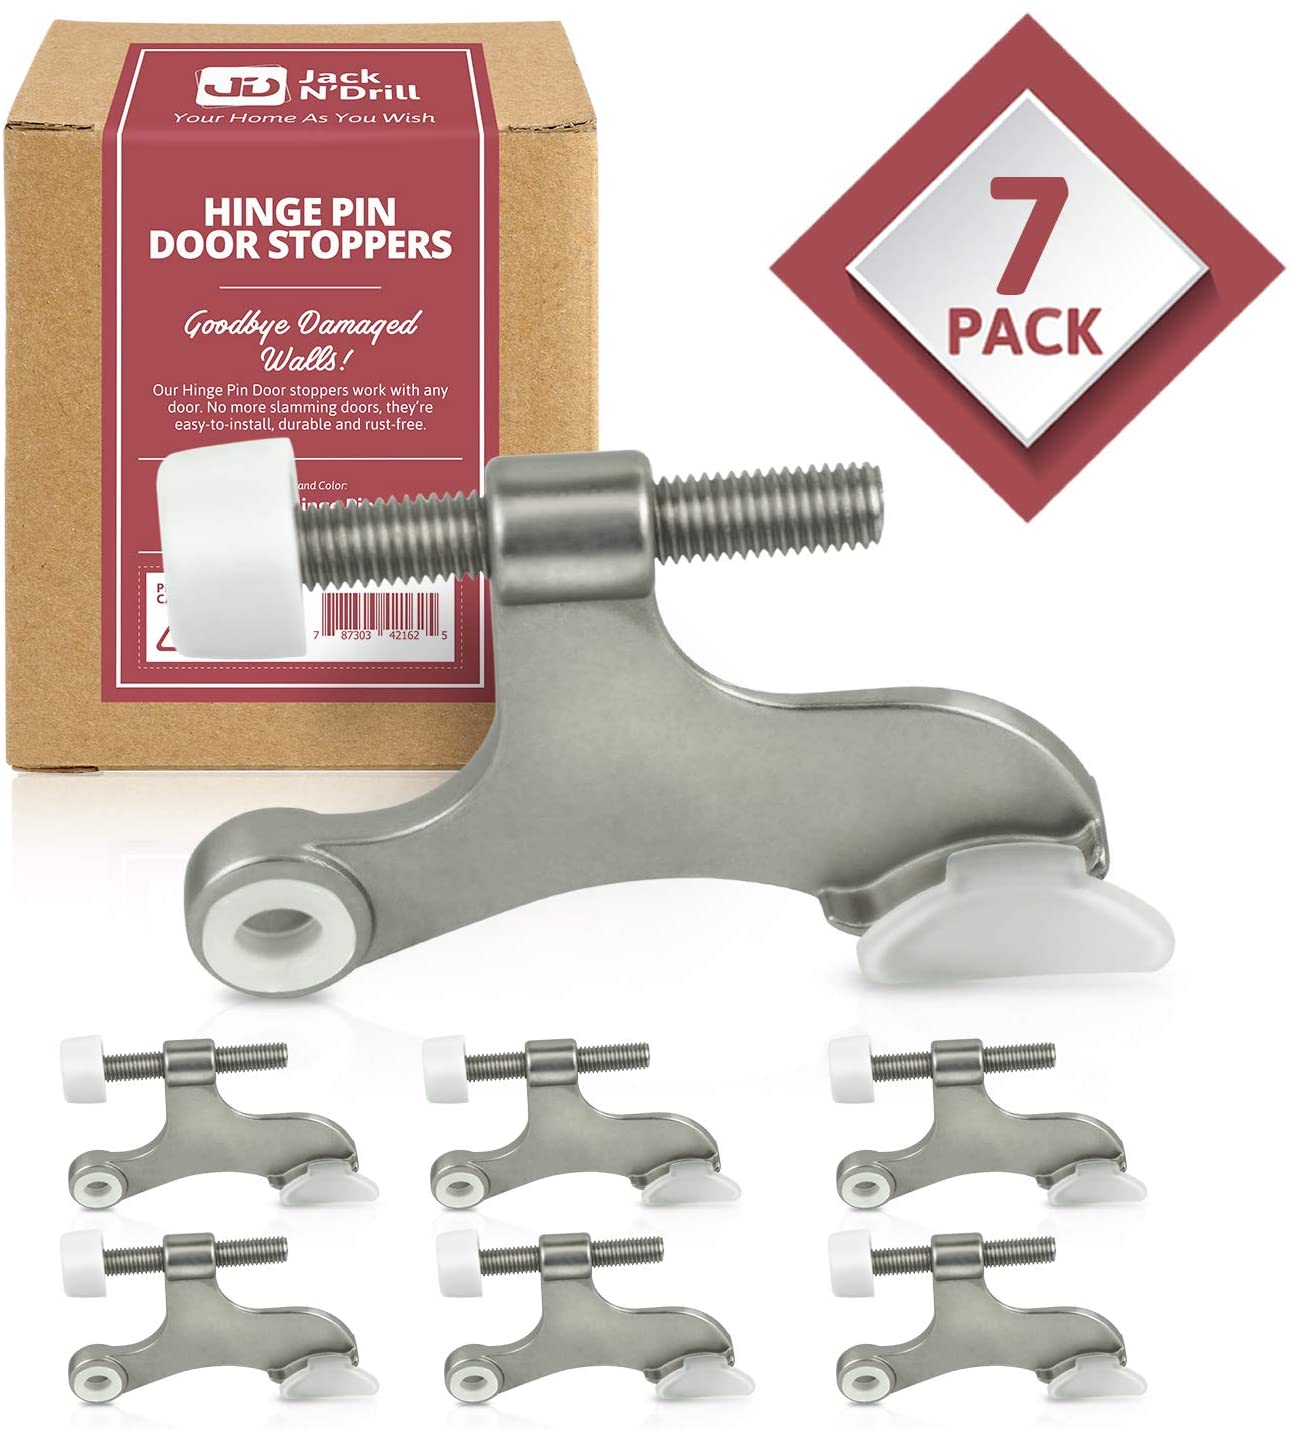 Jack N' Drill Hinge Pin Door Stop (7 Pack) - Convenient Door Stopper for Door Hinges | Durable, Heavy Duty Metal Construction for Preventing Damaged Walls and Extra Door Security